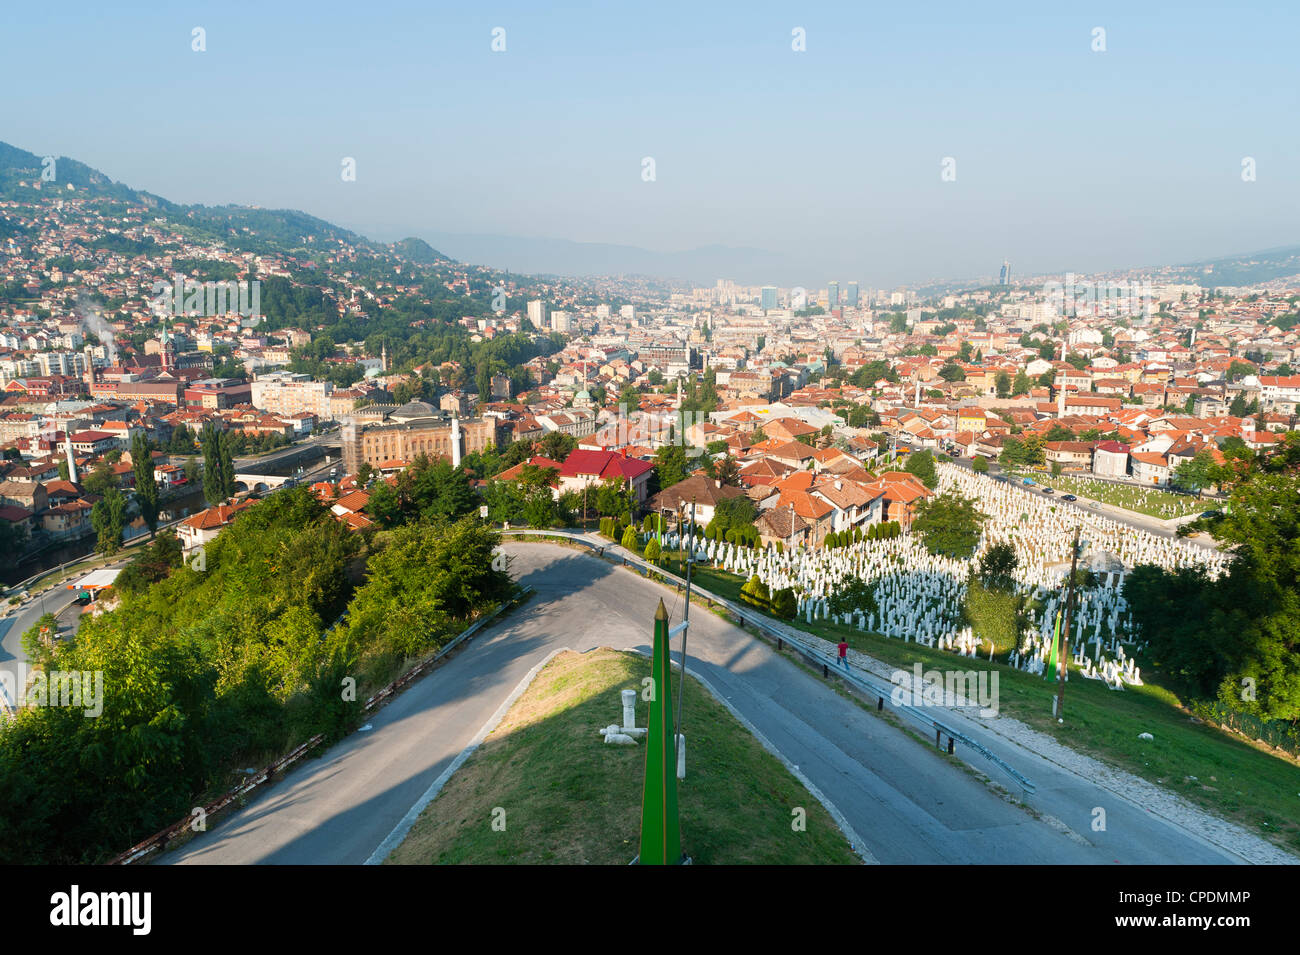 View of Sarajevo from Yellow Bastion, Sarajevo, Bosnia and Herzegovina, Europe - Stock Image